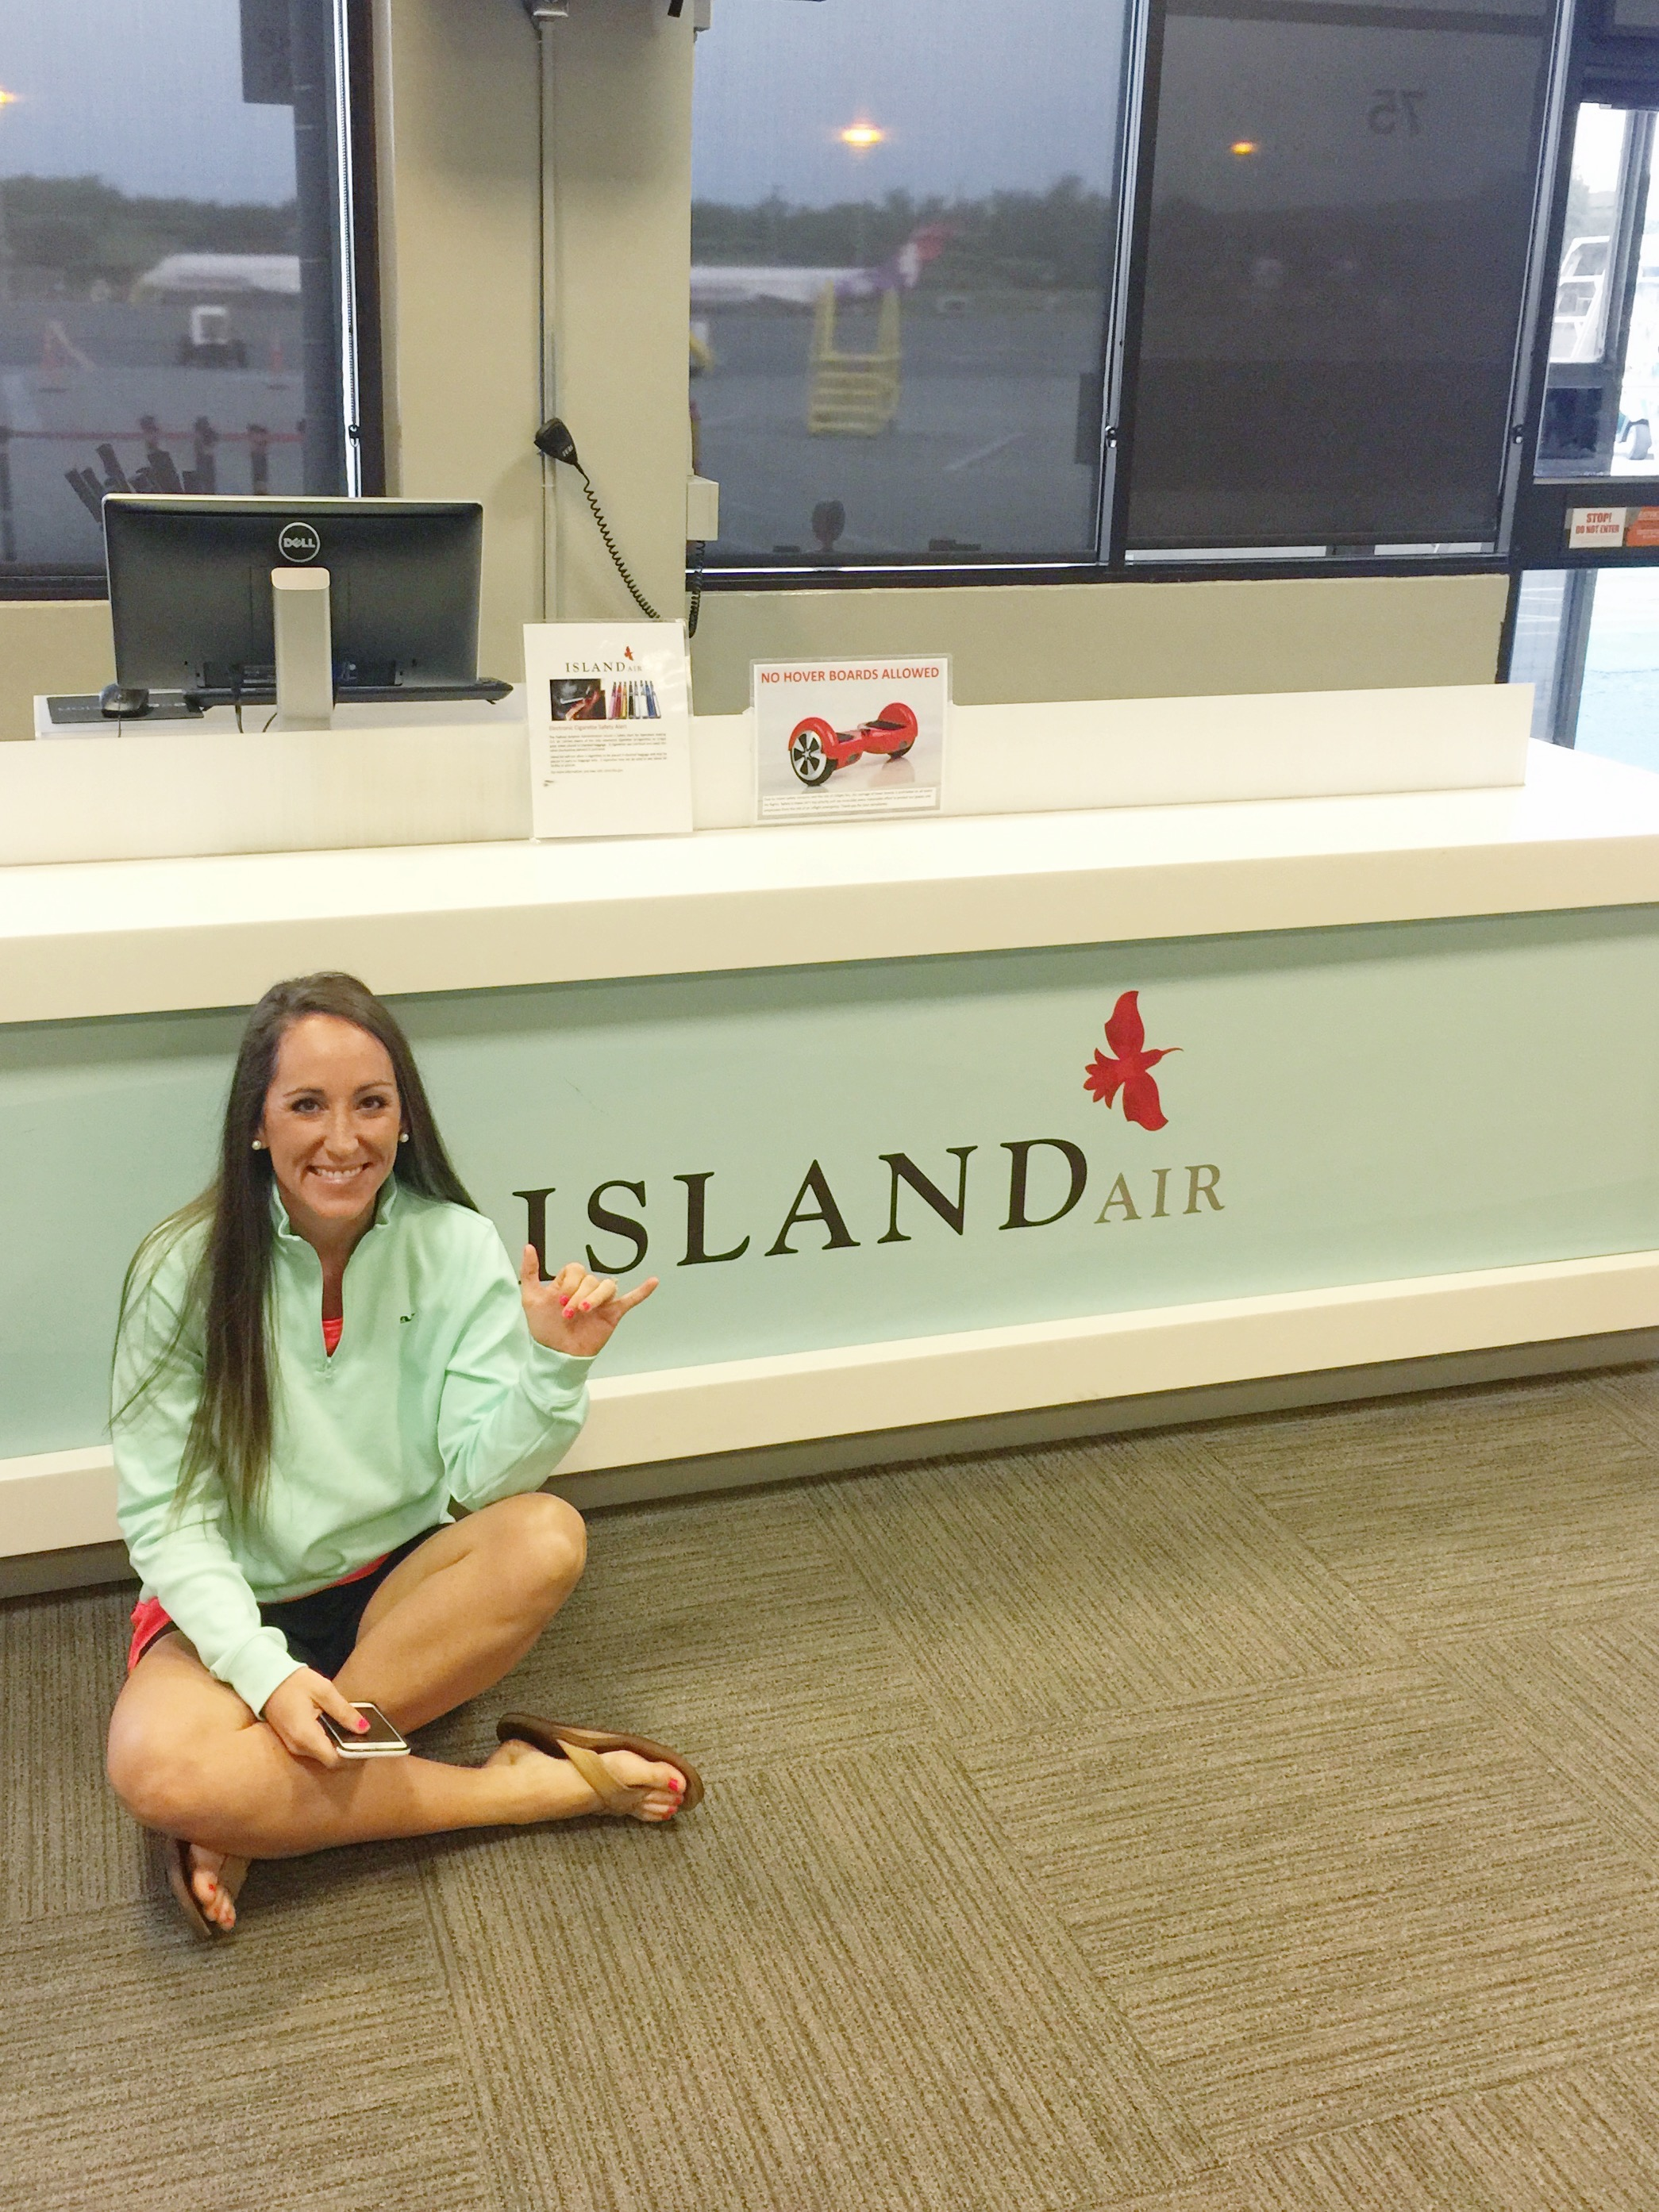 Island Air - The Ultimate Hawaii Guide For Military Families - Hawaii Guide - Hawaii Must Do - Hawaii Itinerary - Oahu Itinerary - Maui - Kauai - Big Island Hawaii - Communikait by Kait Hanson